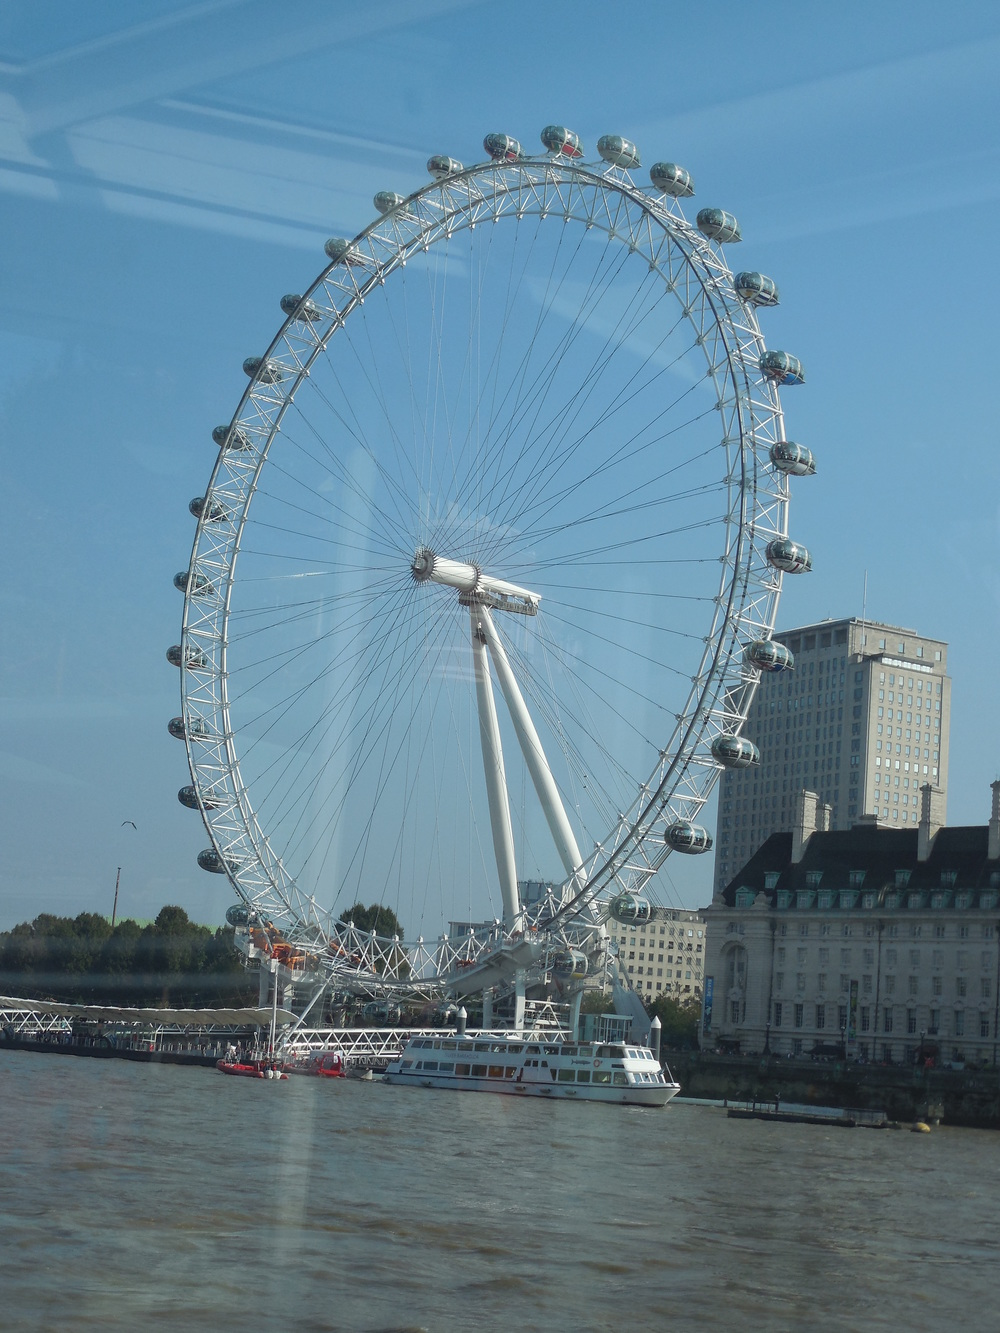 (London Eye Pier - London Eye, London Aquarium, London Dungeon, IMAX Cinema, National Theatre and Southbank Centre)